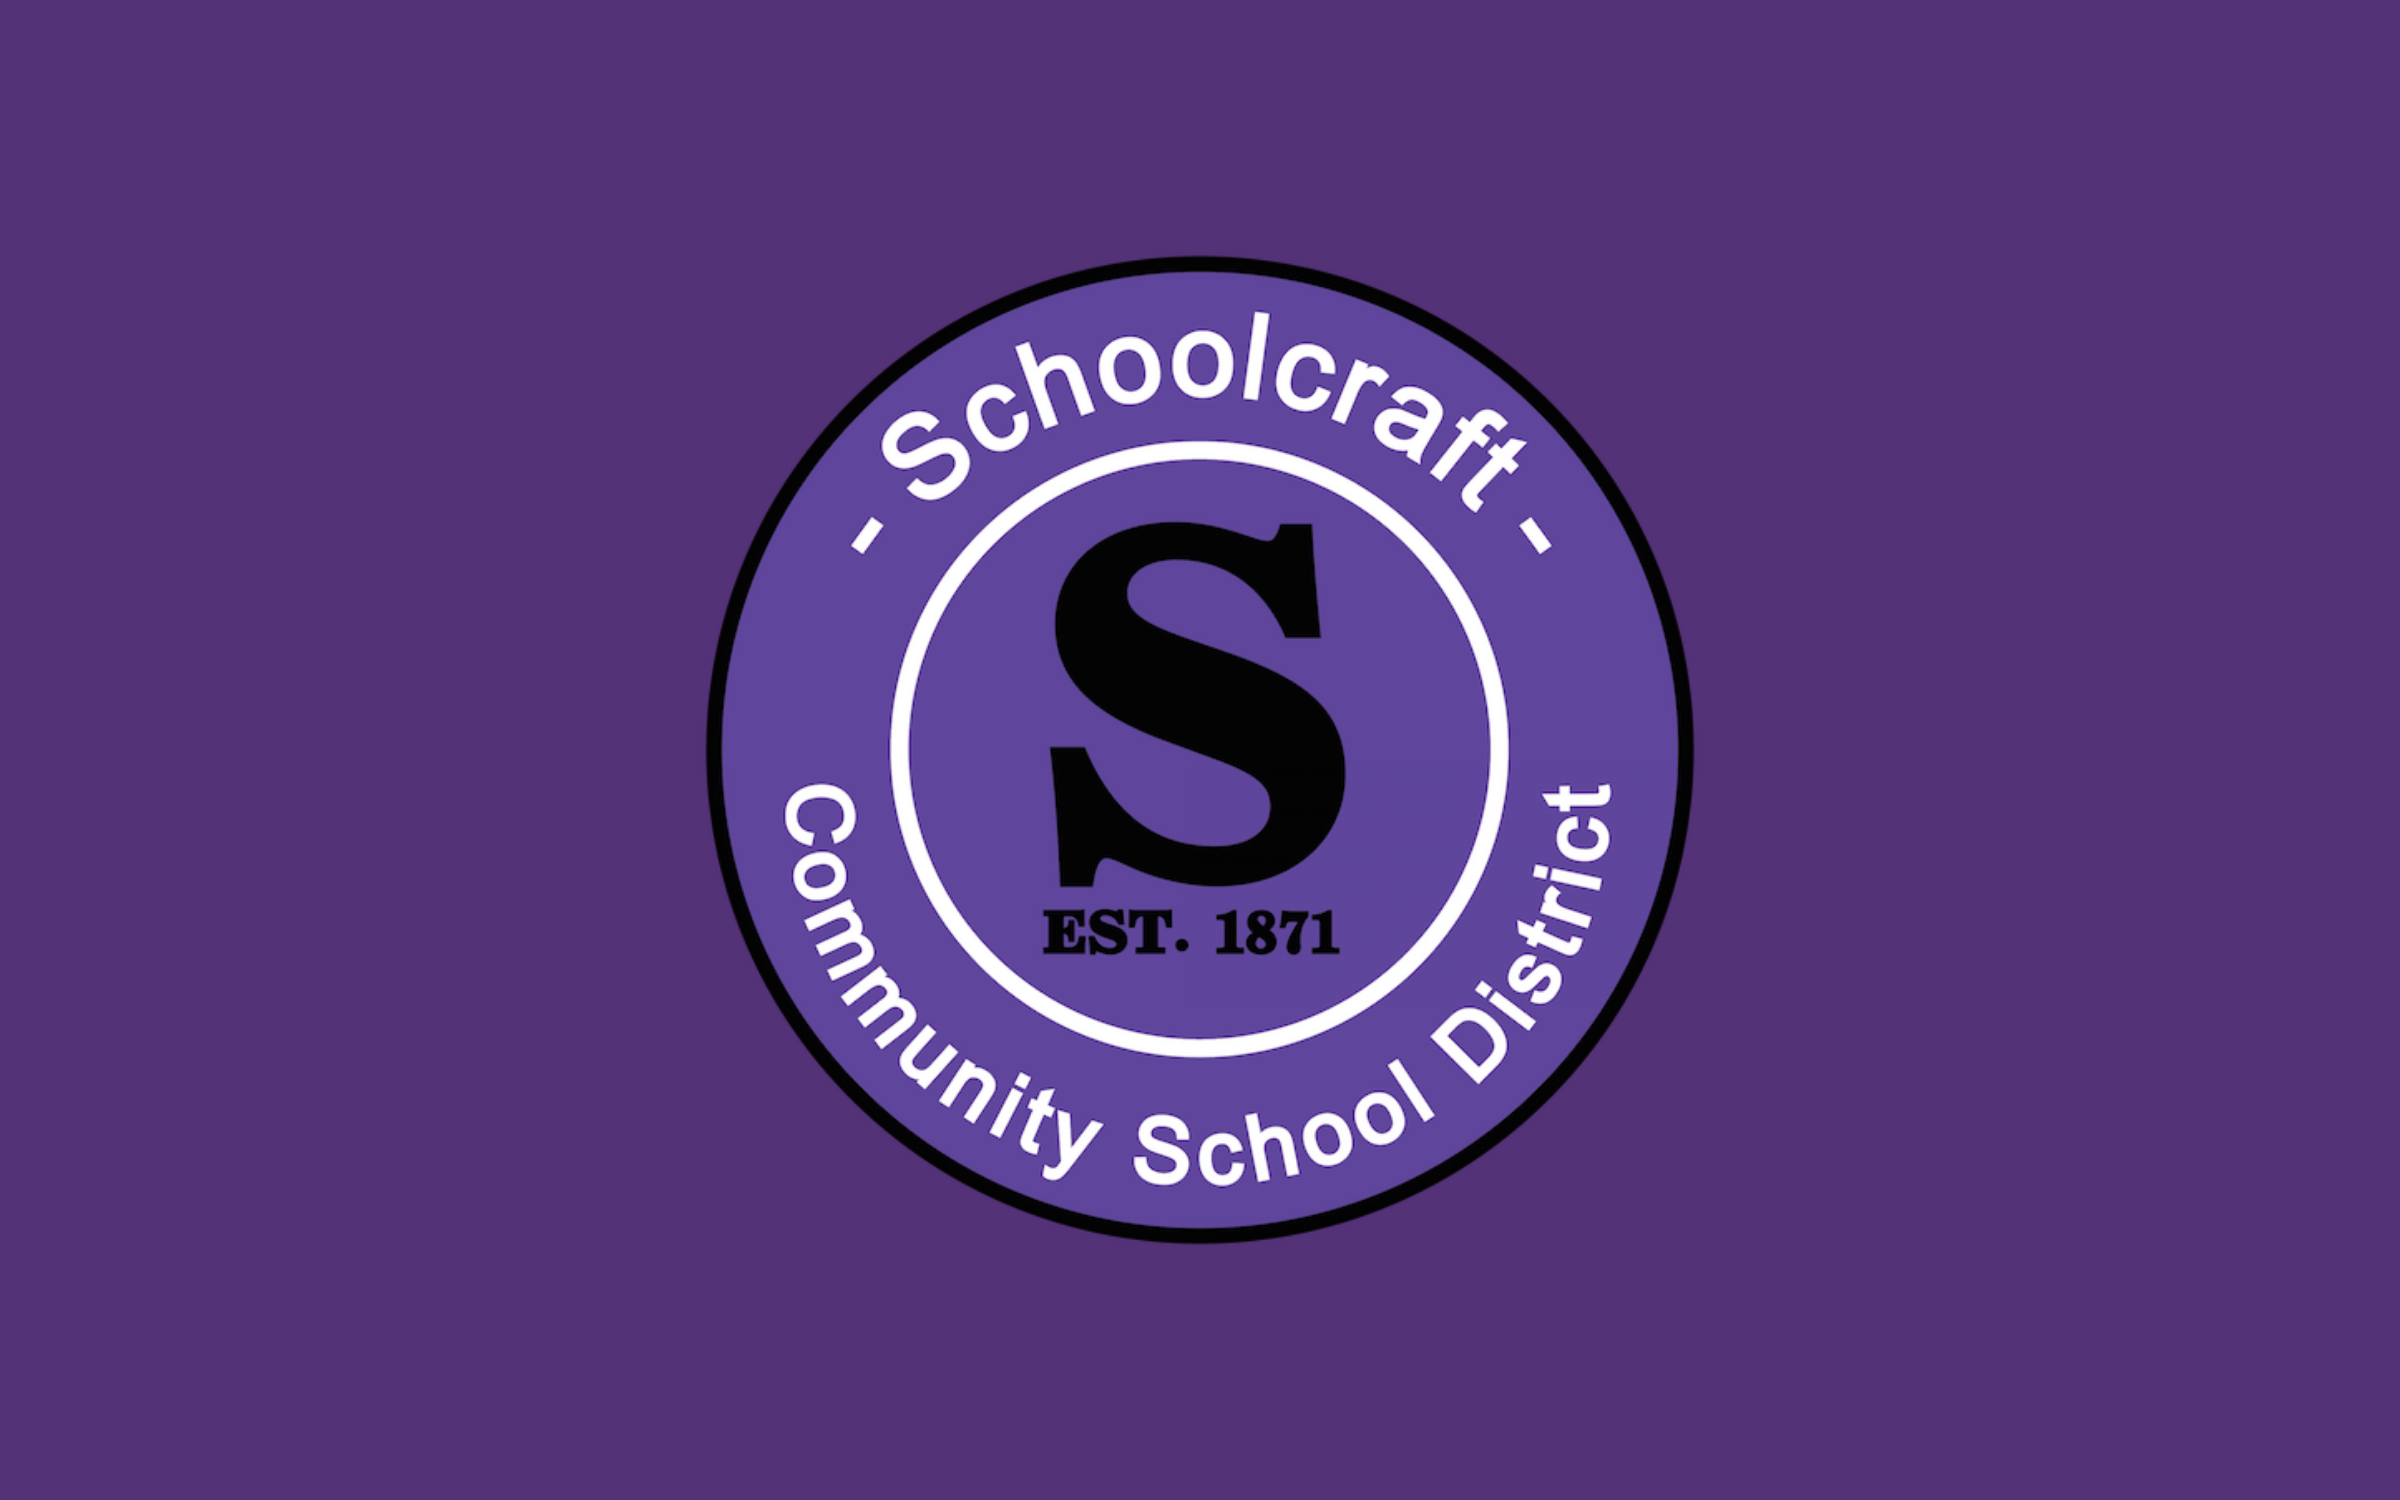 Schoolcraft Community School District Est. 1871